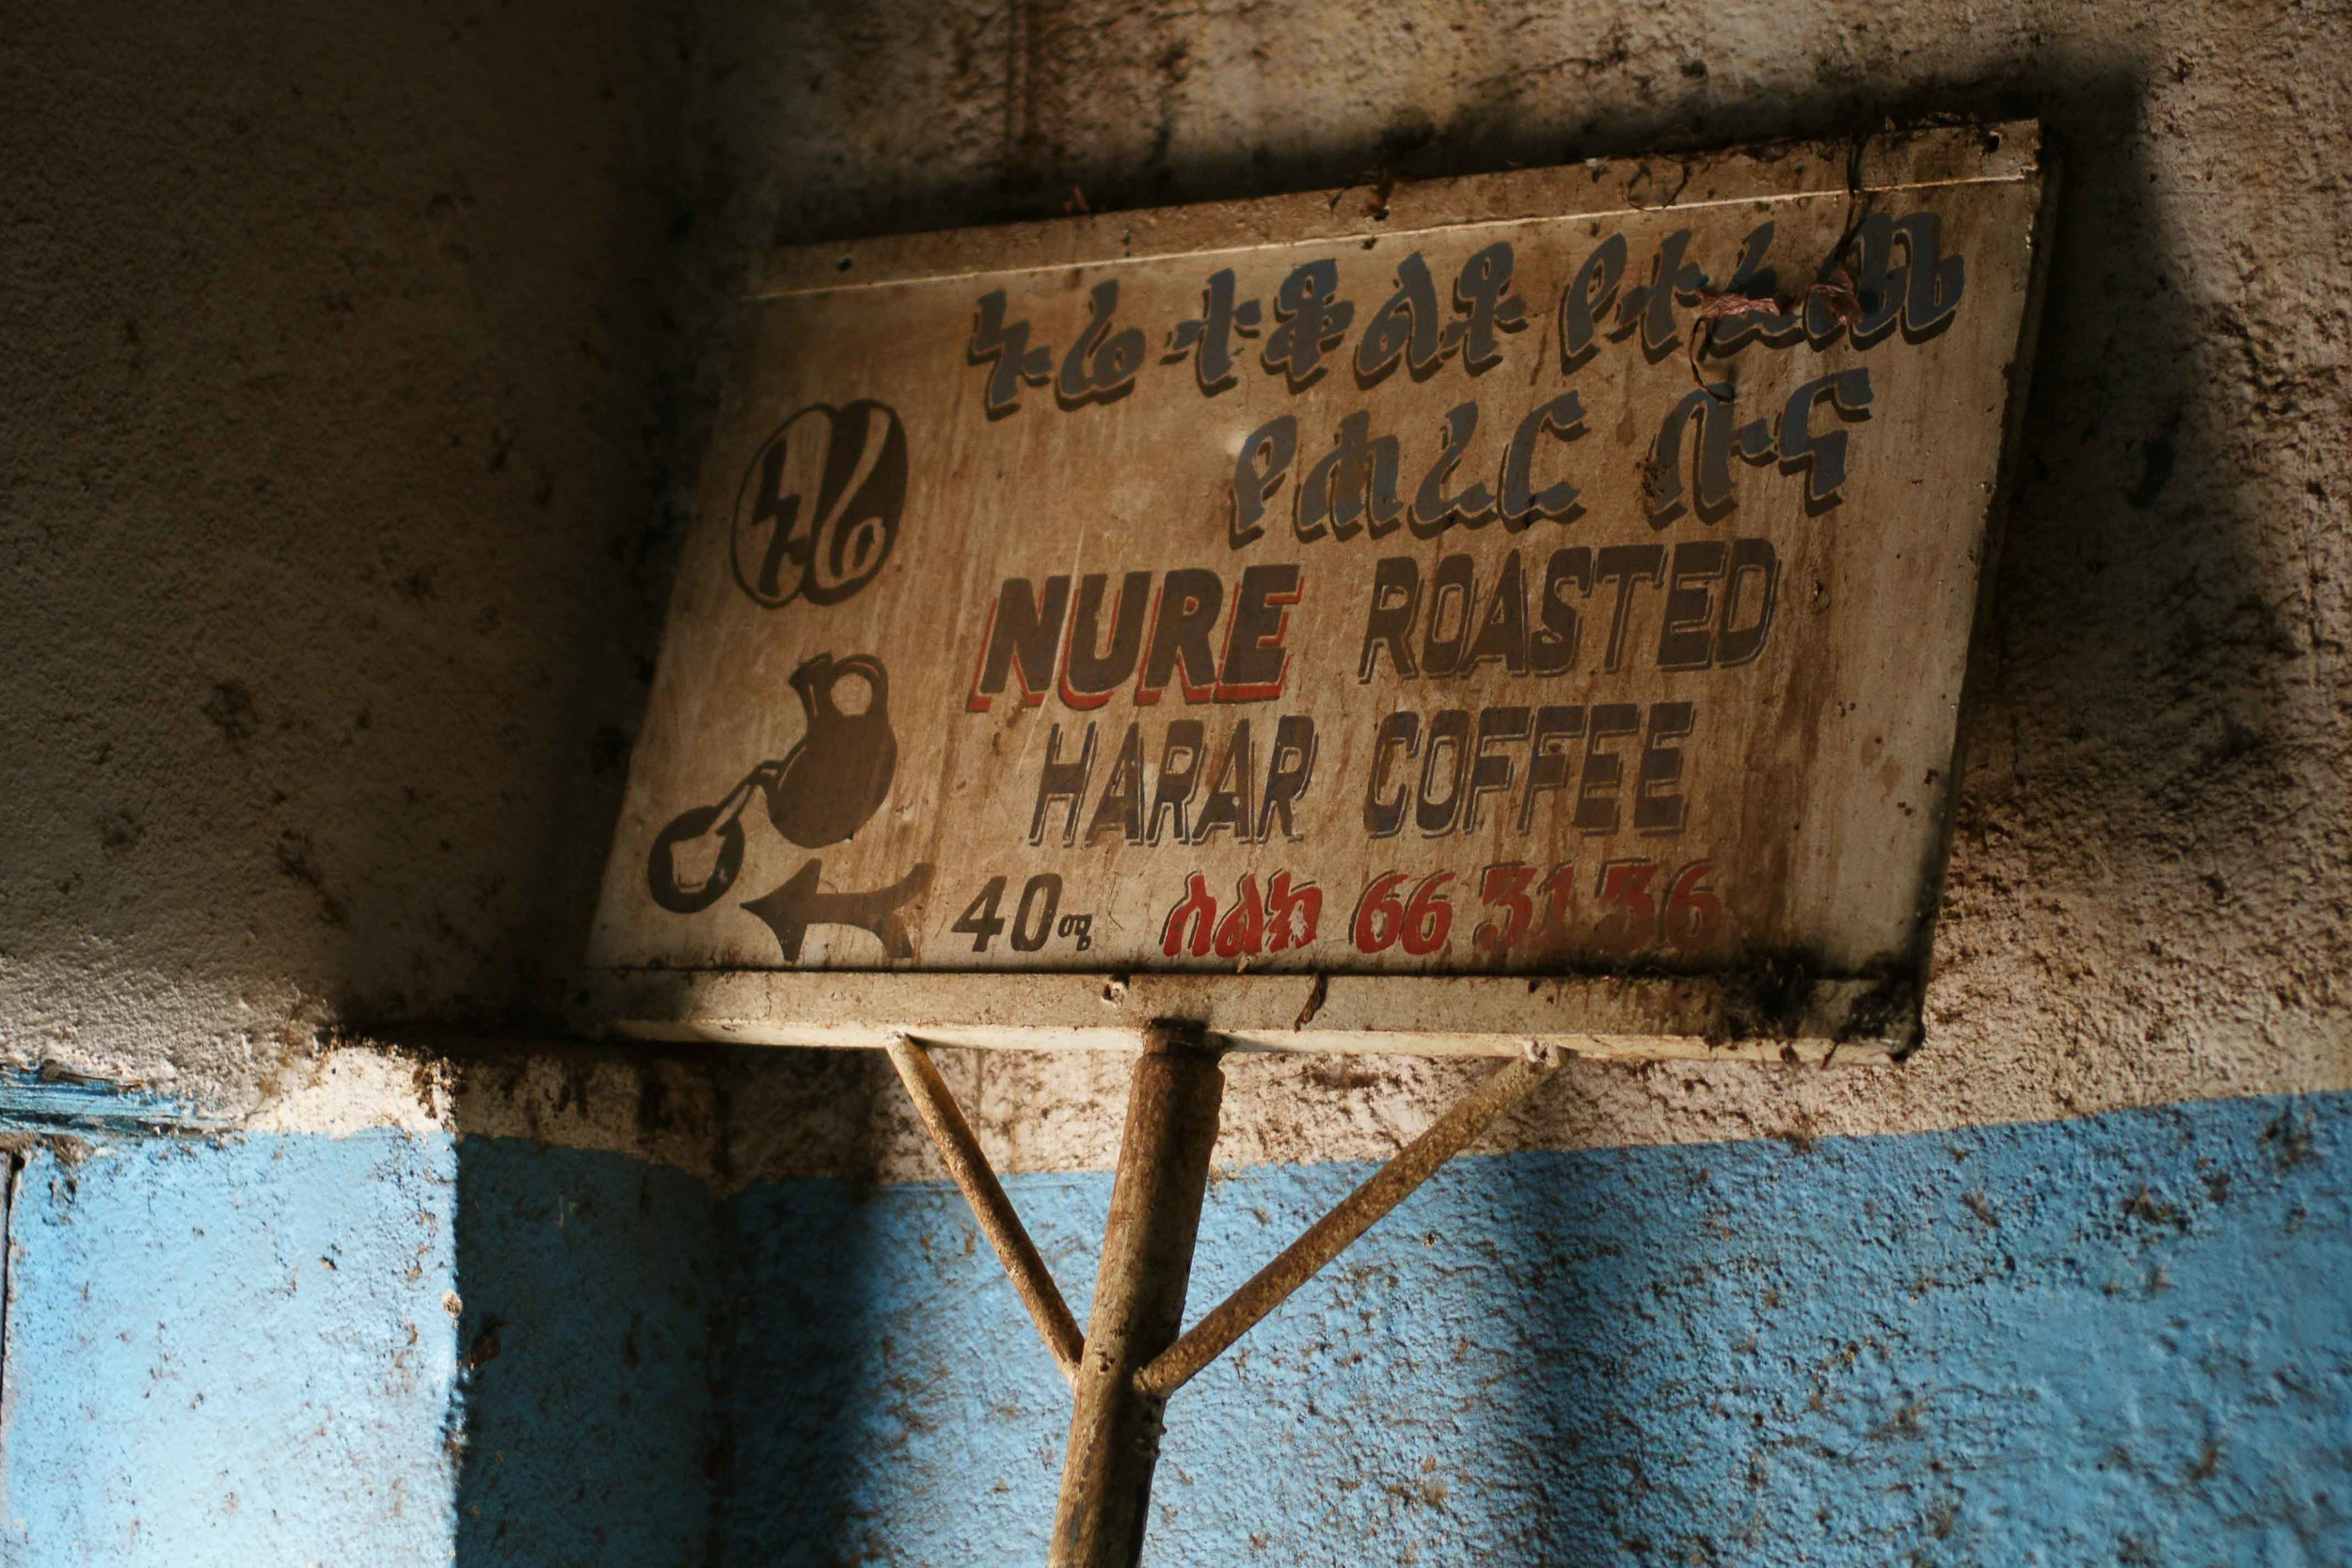 Harar may be the fourth holiest city in Islam, but it's definitely the Mecca of great coffee.